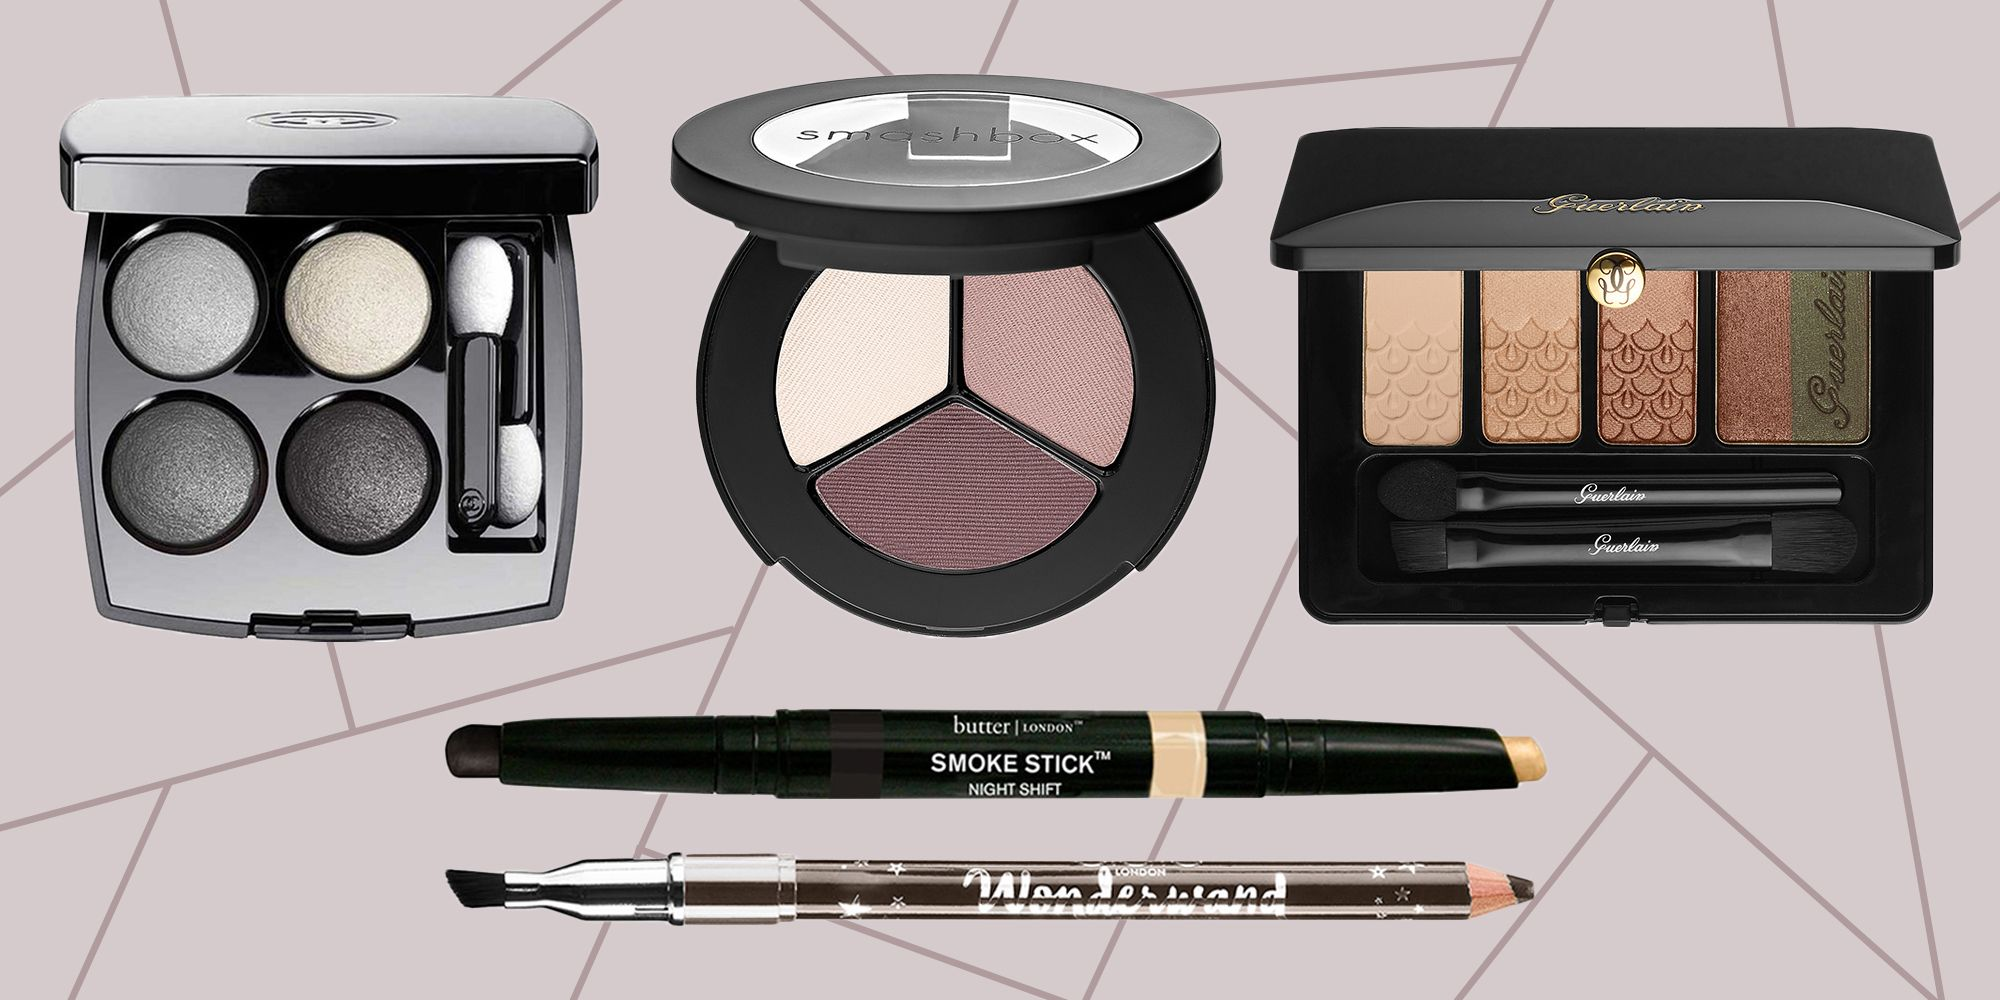 The Best Smokey Eye Makeup For 2018 Smoky Eye Shadow Palettes And